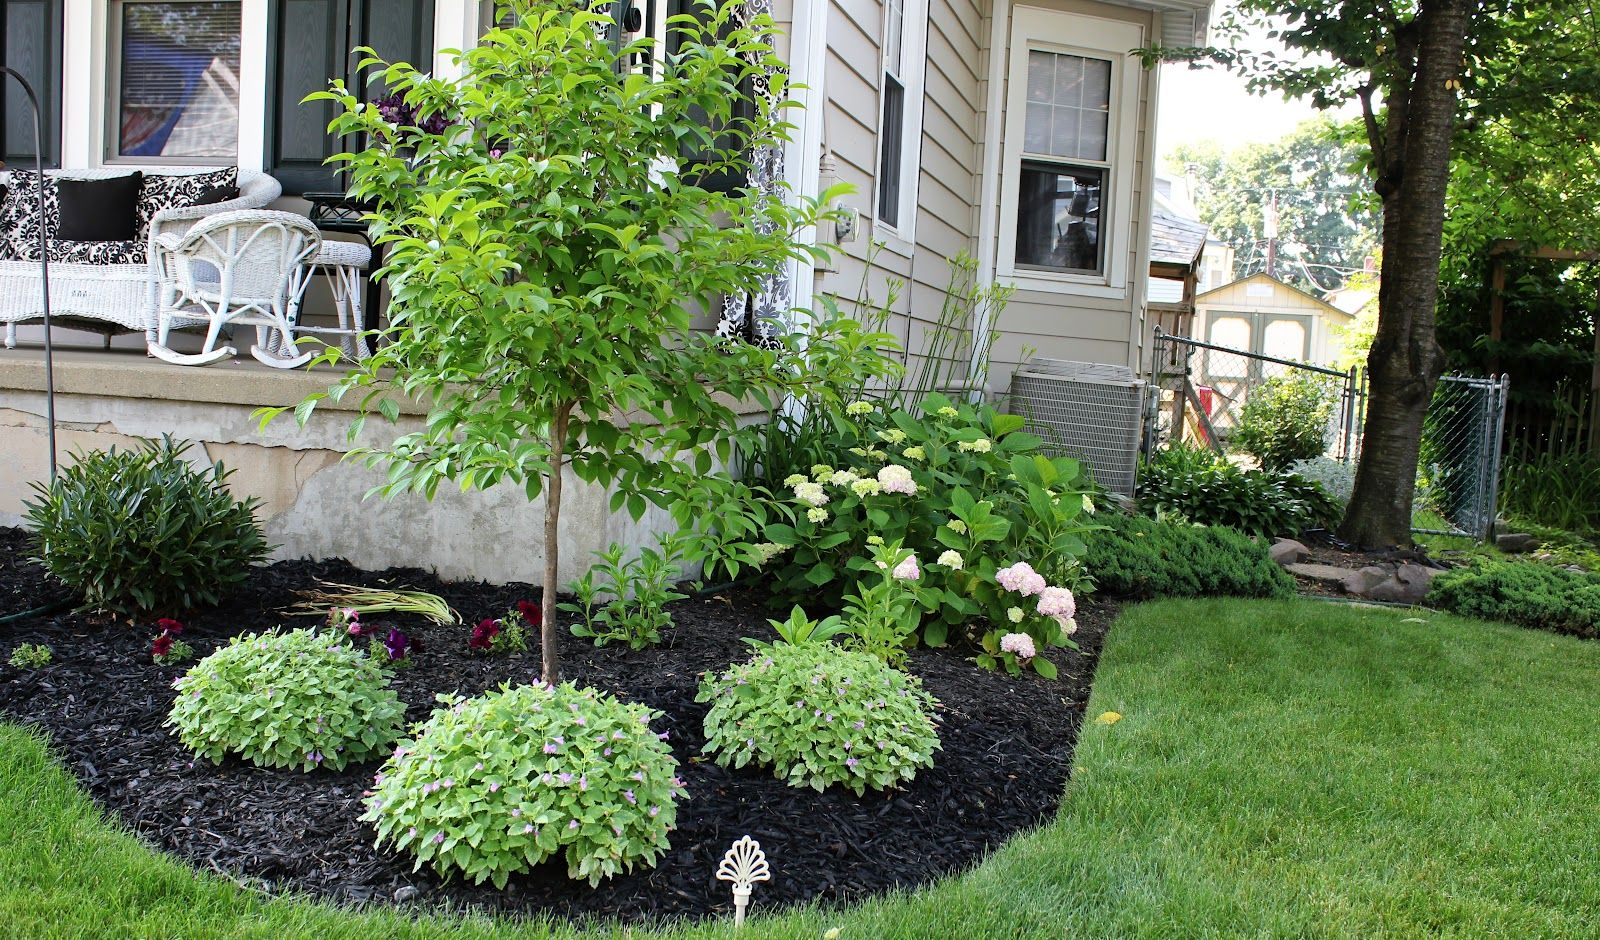 Pictures of flower beds in front of house can you see for Flower beds in front of house